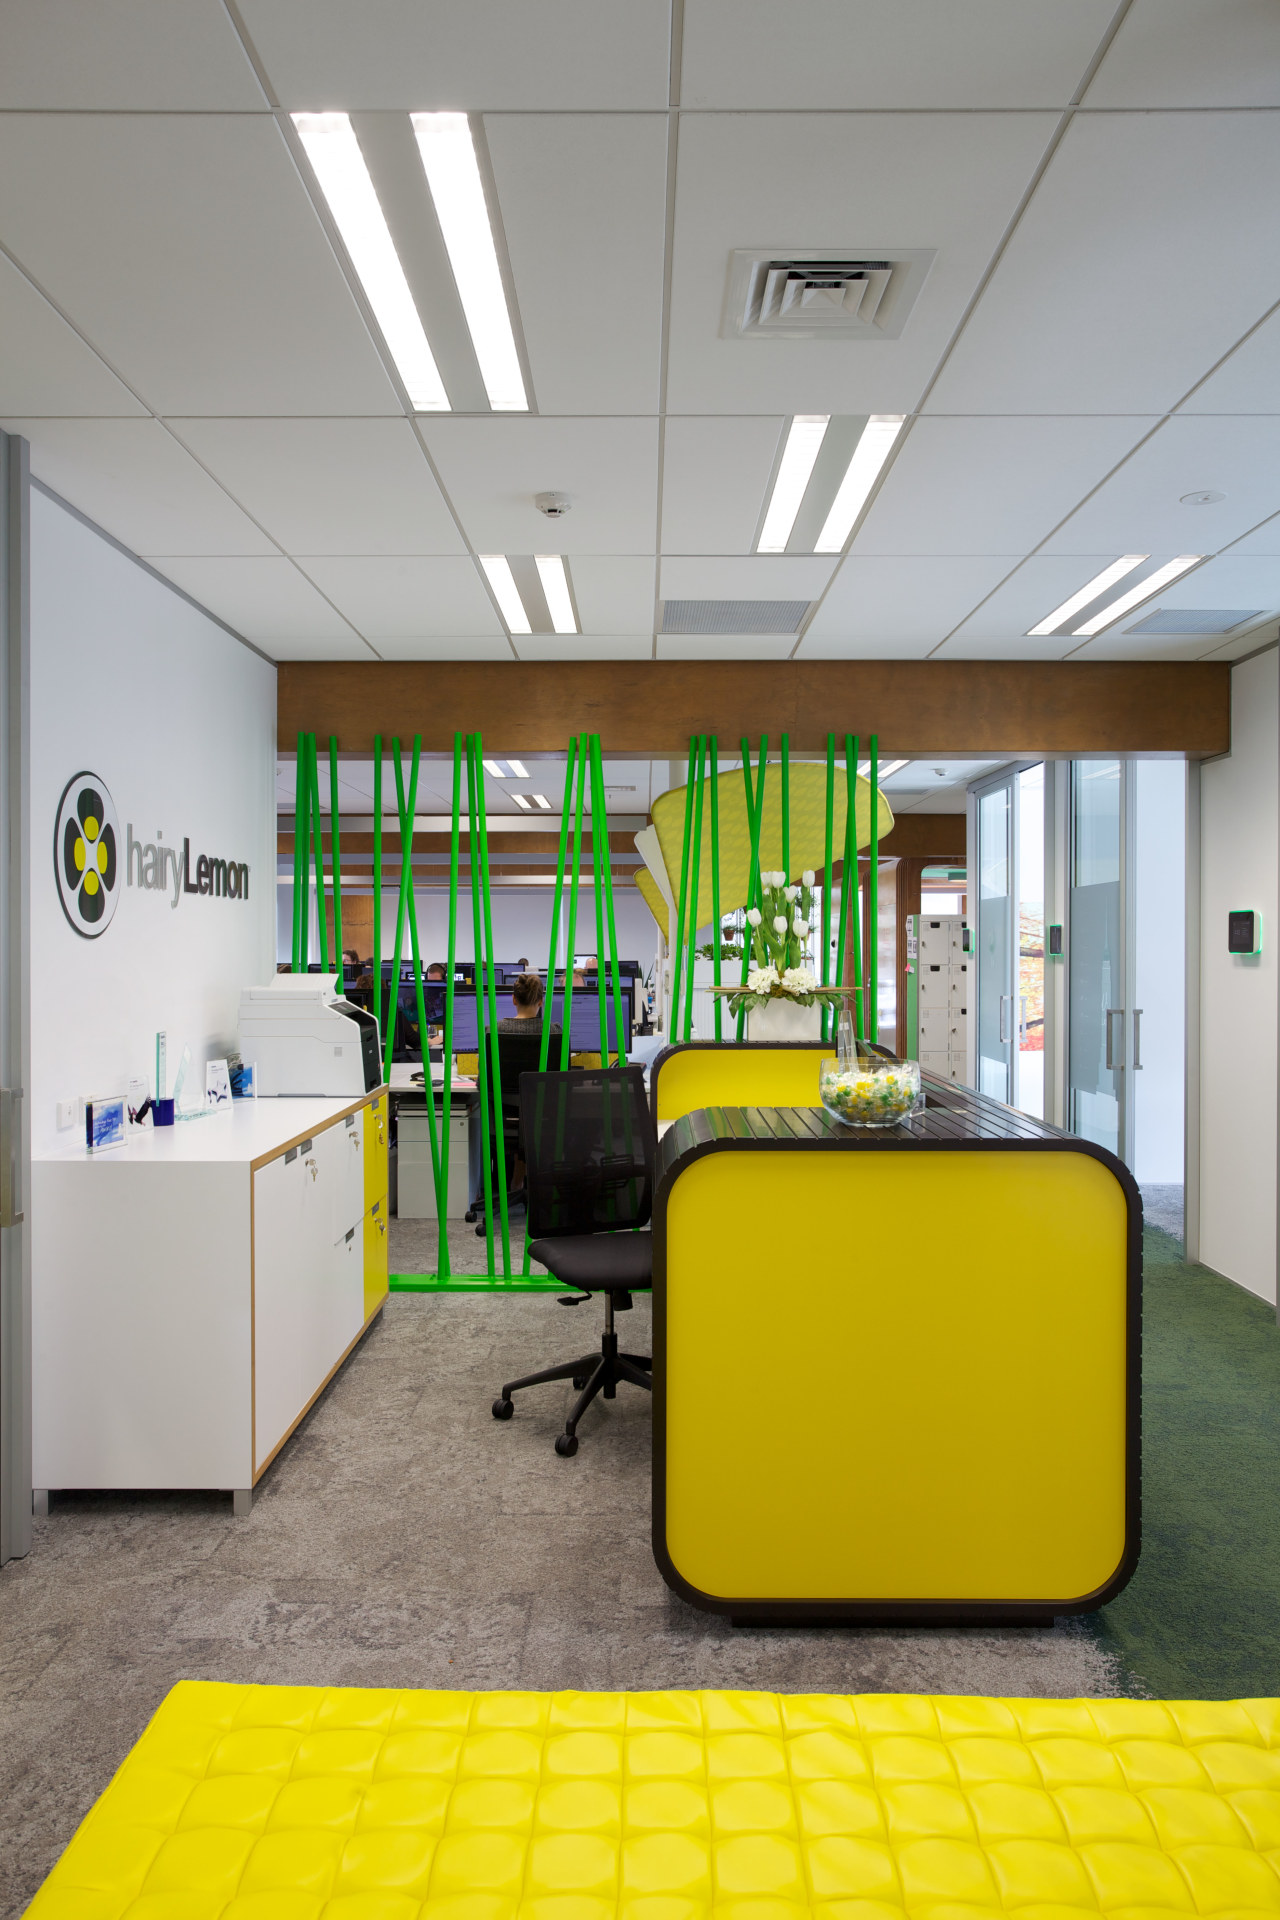 Colourful citrus shades enliven the Hairy Lemon offices ceiling, interior design, office, product design, gray